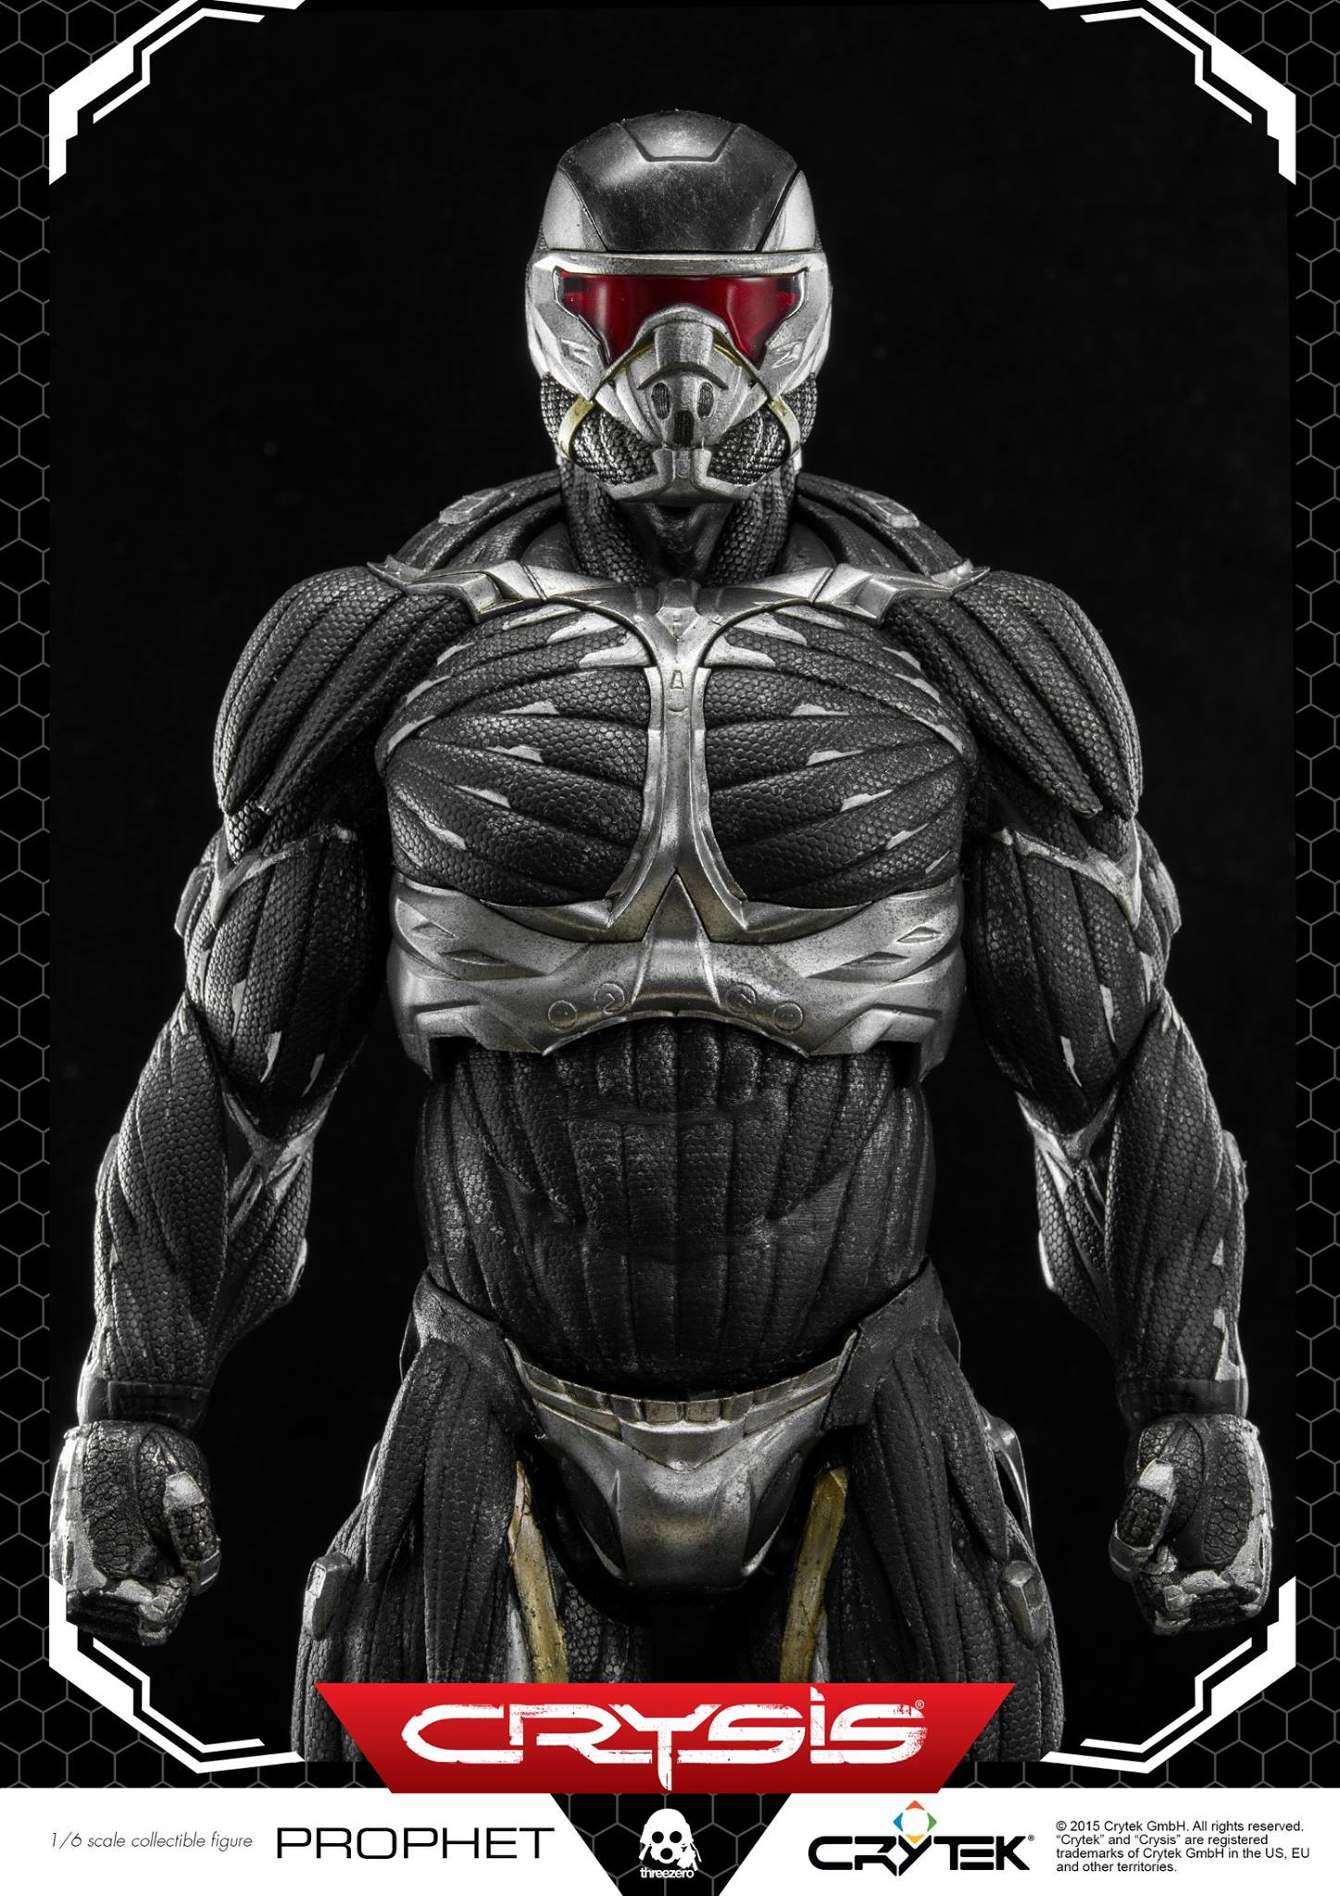 ThreeZero-Crysis-video-game-Prophet-CRY9_1340_c.jpg